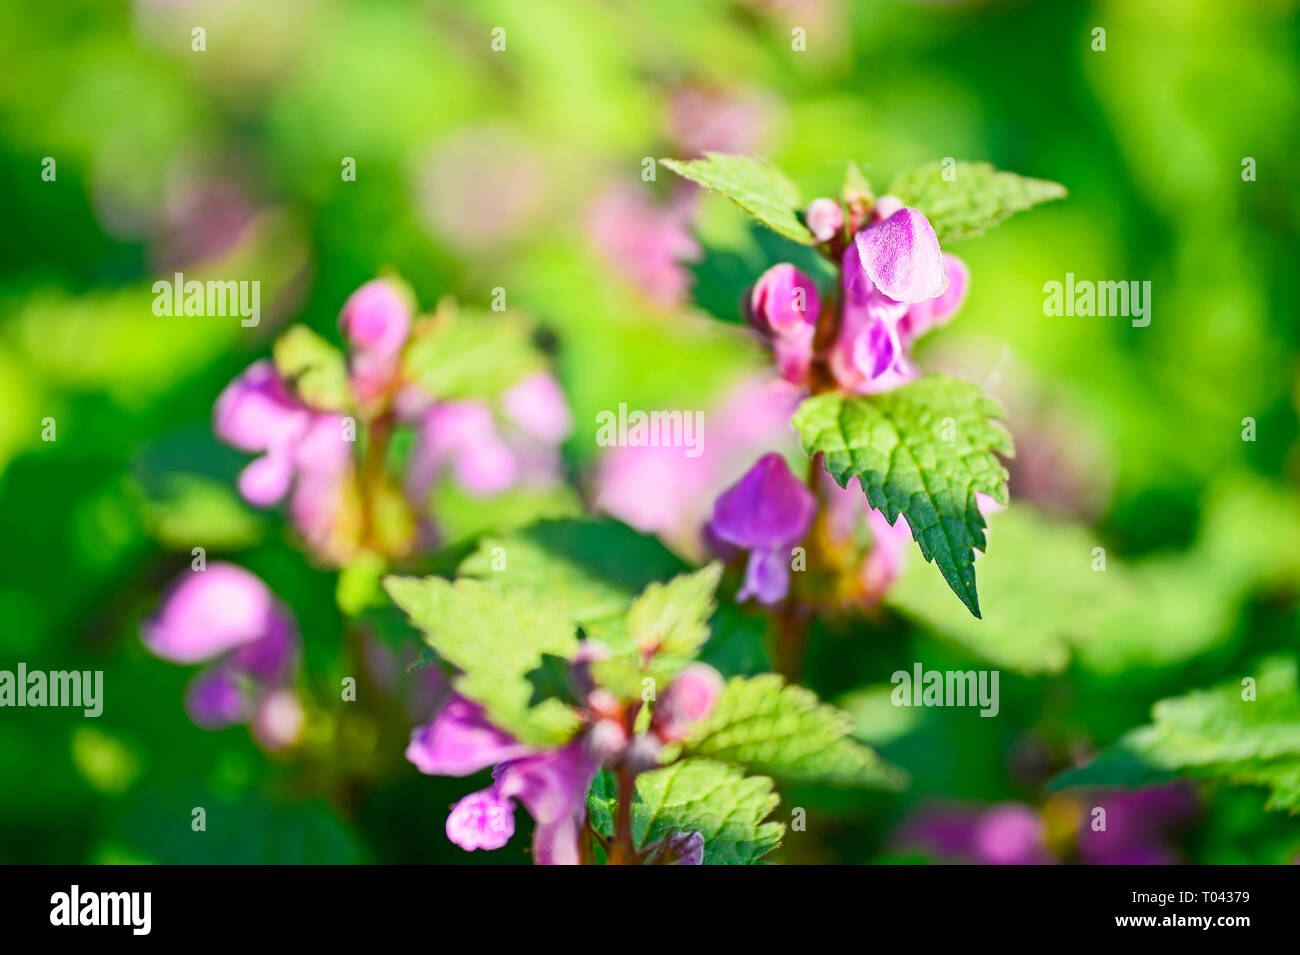 Purple flowers family spongy, dead-nettle. Shallow depth of field. - Stock Image